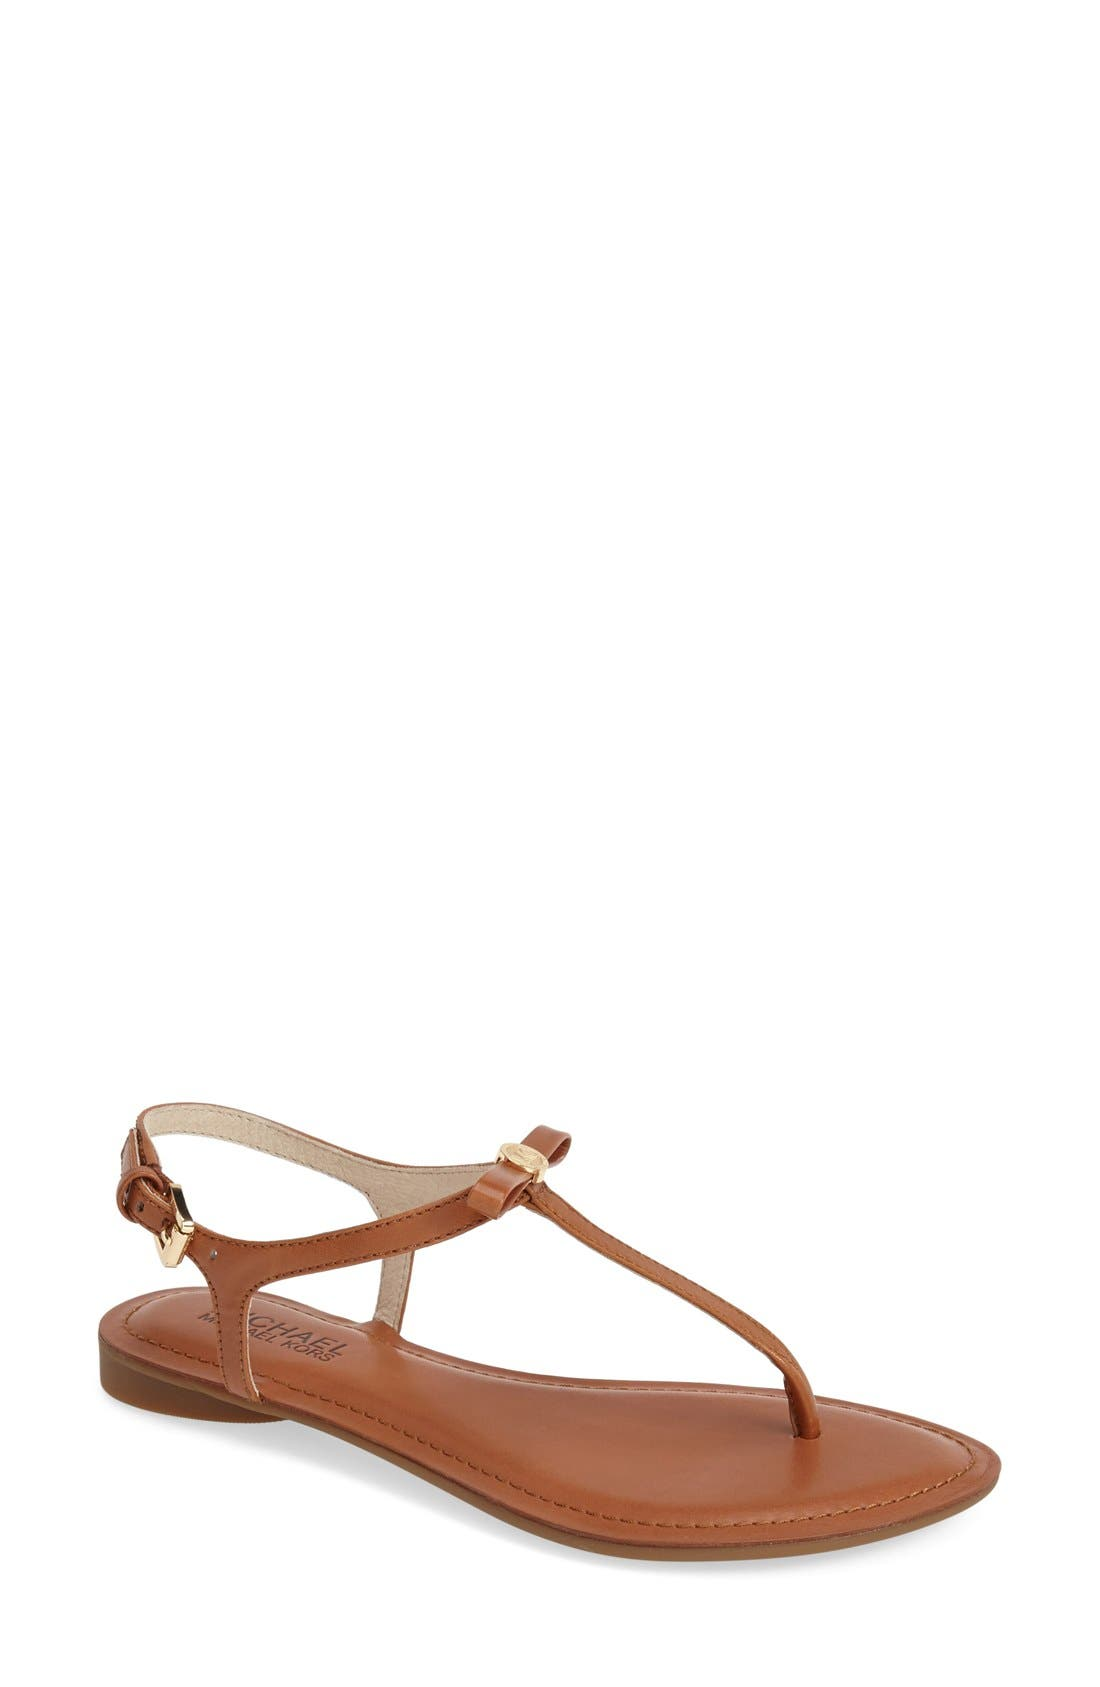 'Josie' T-Strap Leather Sandal,                         Main,                         color, Luggage